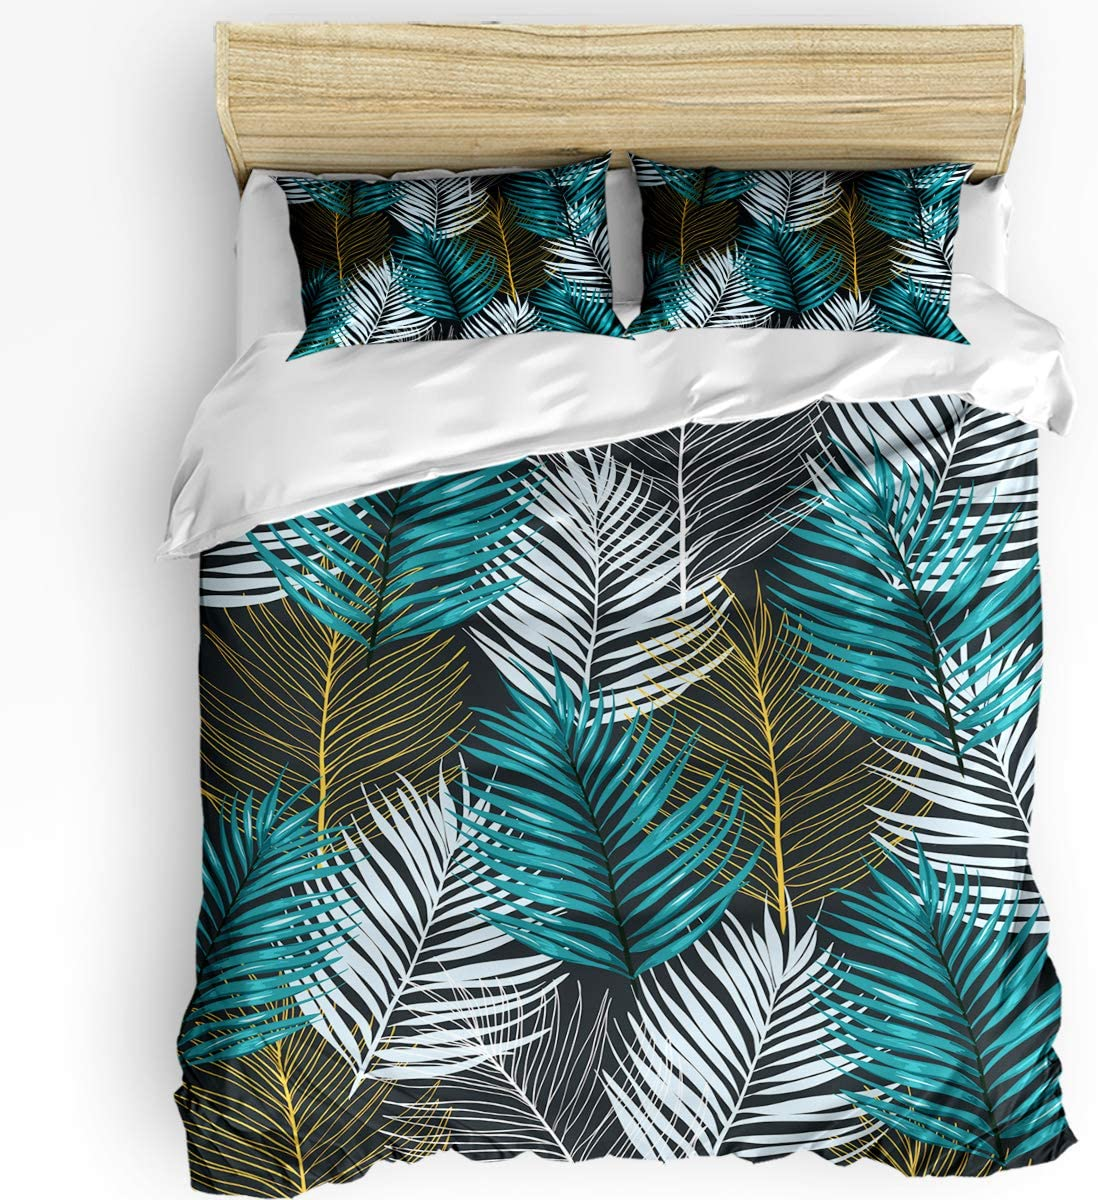 HELLOWINK Duvet Cover 3 Piece Rare Bedding Set Size Twin Tropical Pa 2021 new